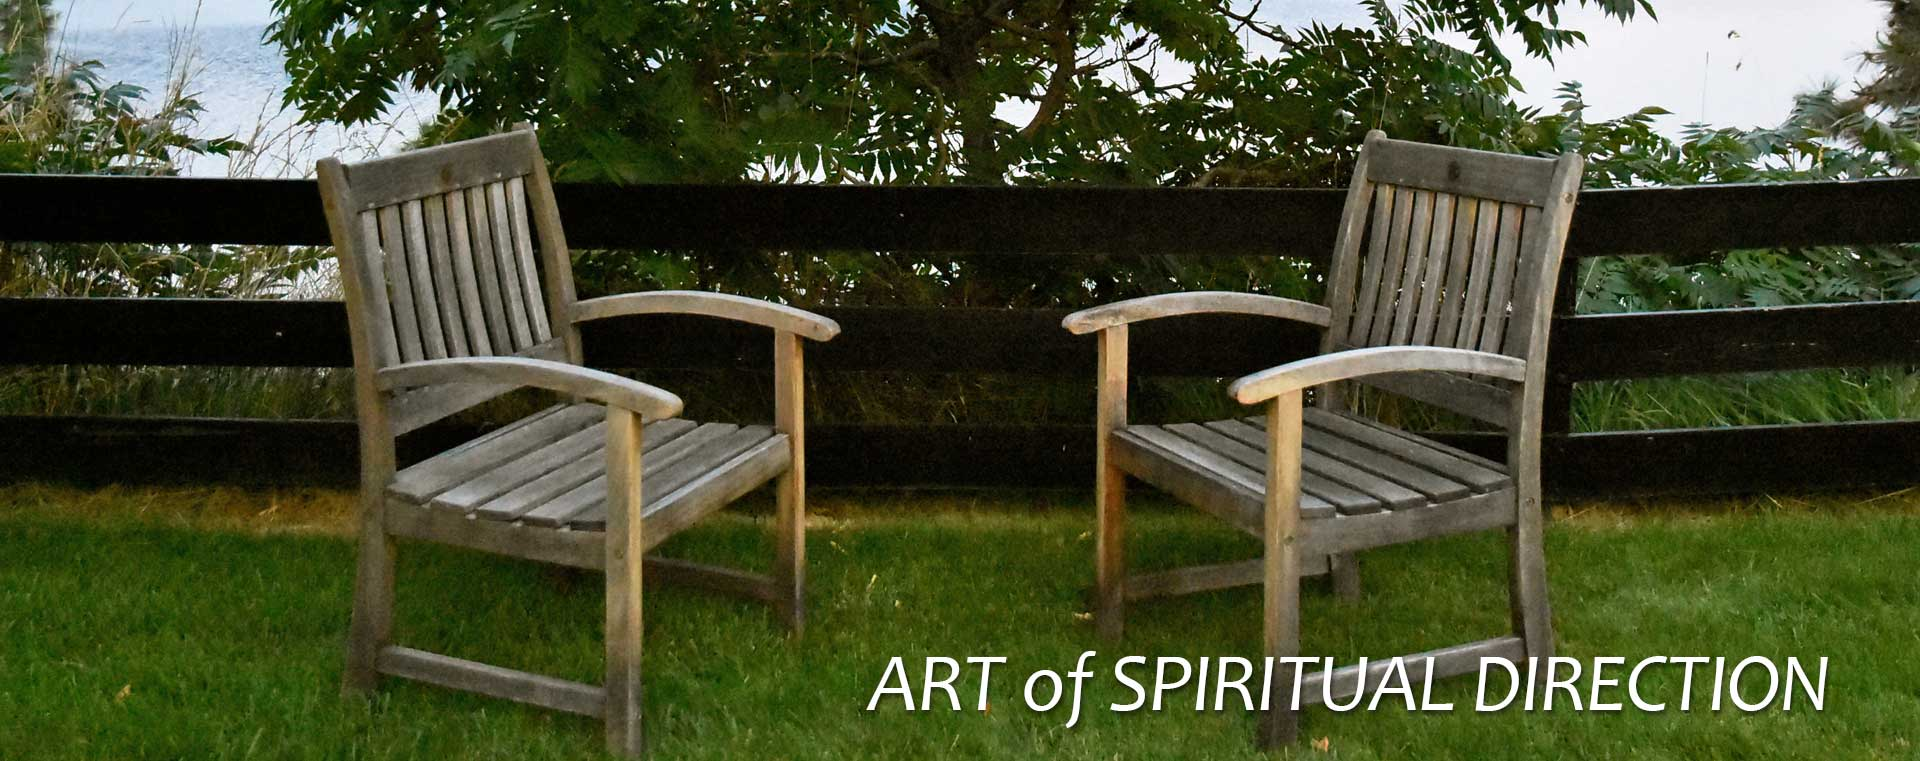 SoulStream Art of Spiritual Direction - Home